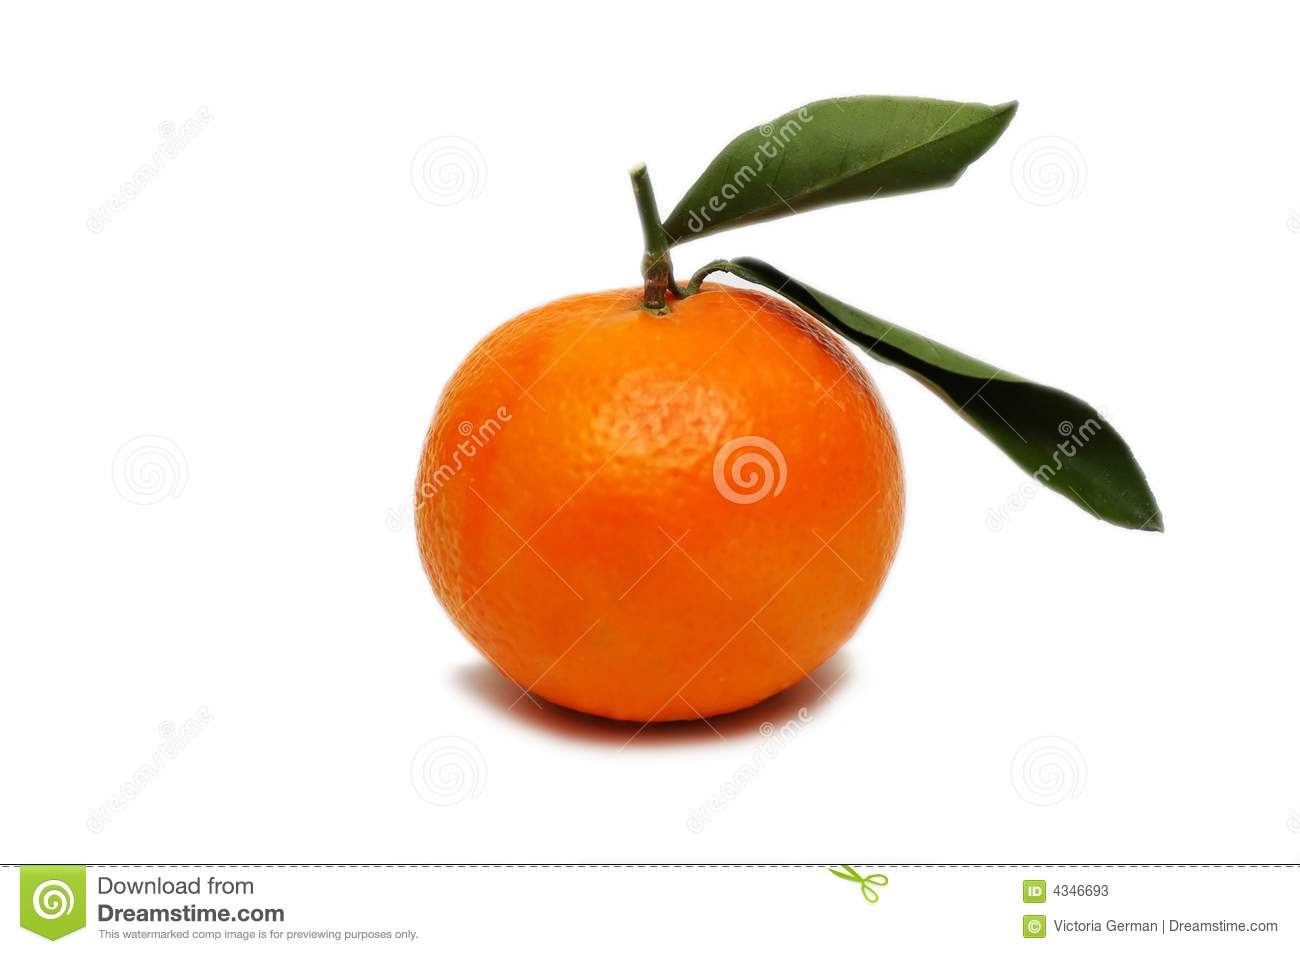 Tangerine isolated on a white background.